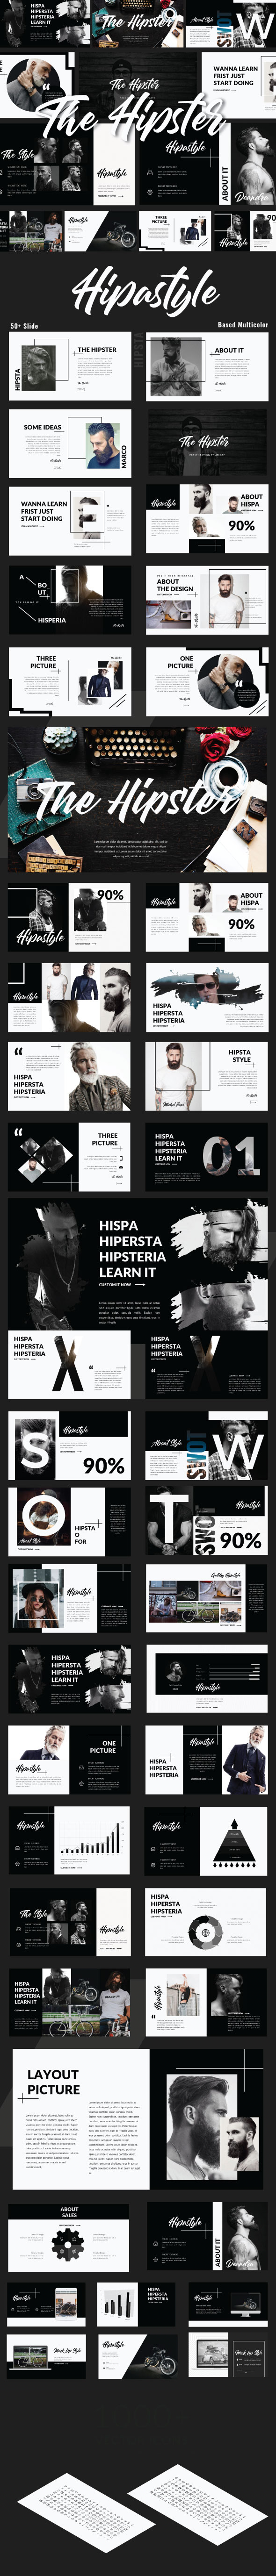 The Hipster Keynote - Creative Keynote Templates